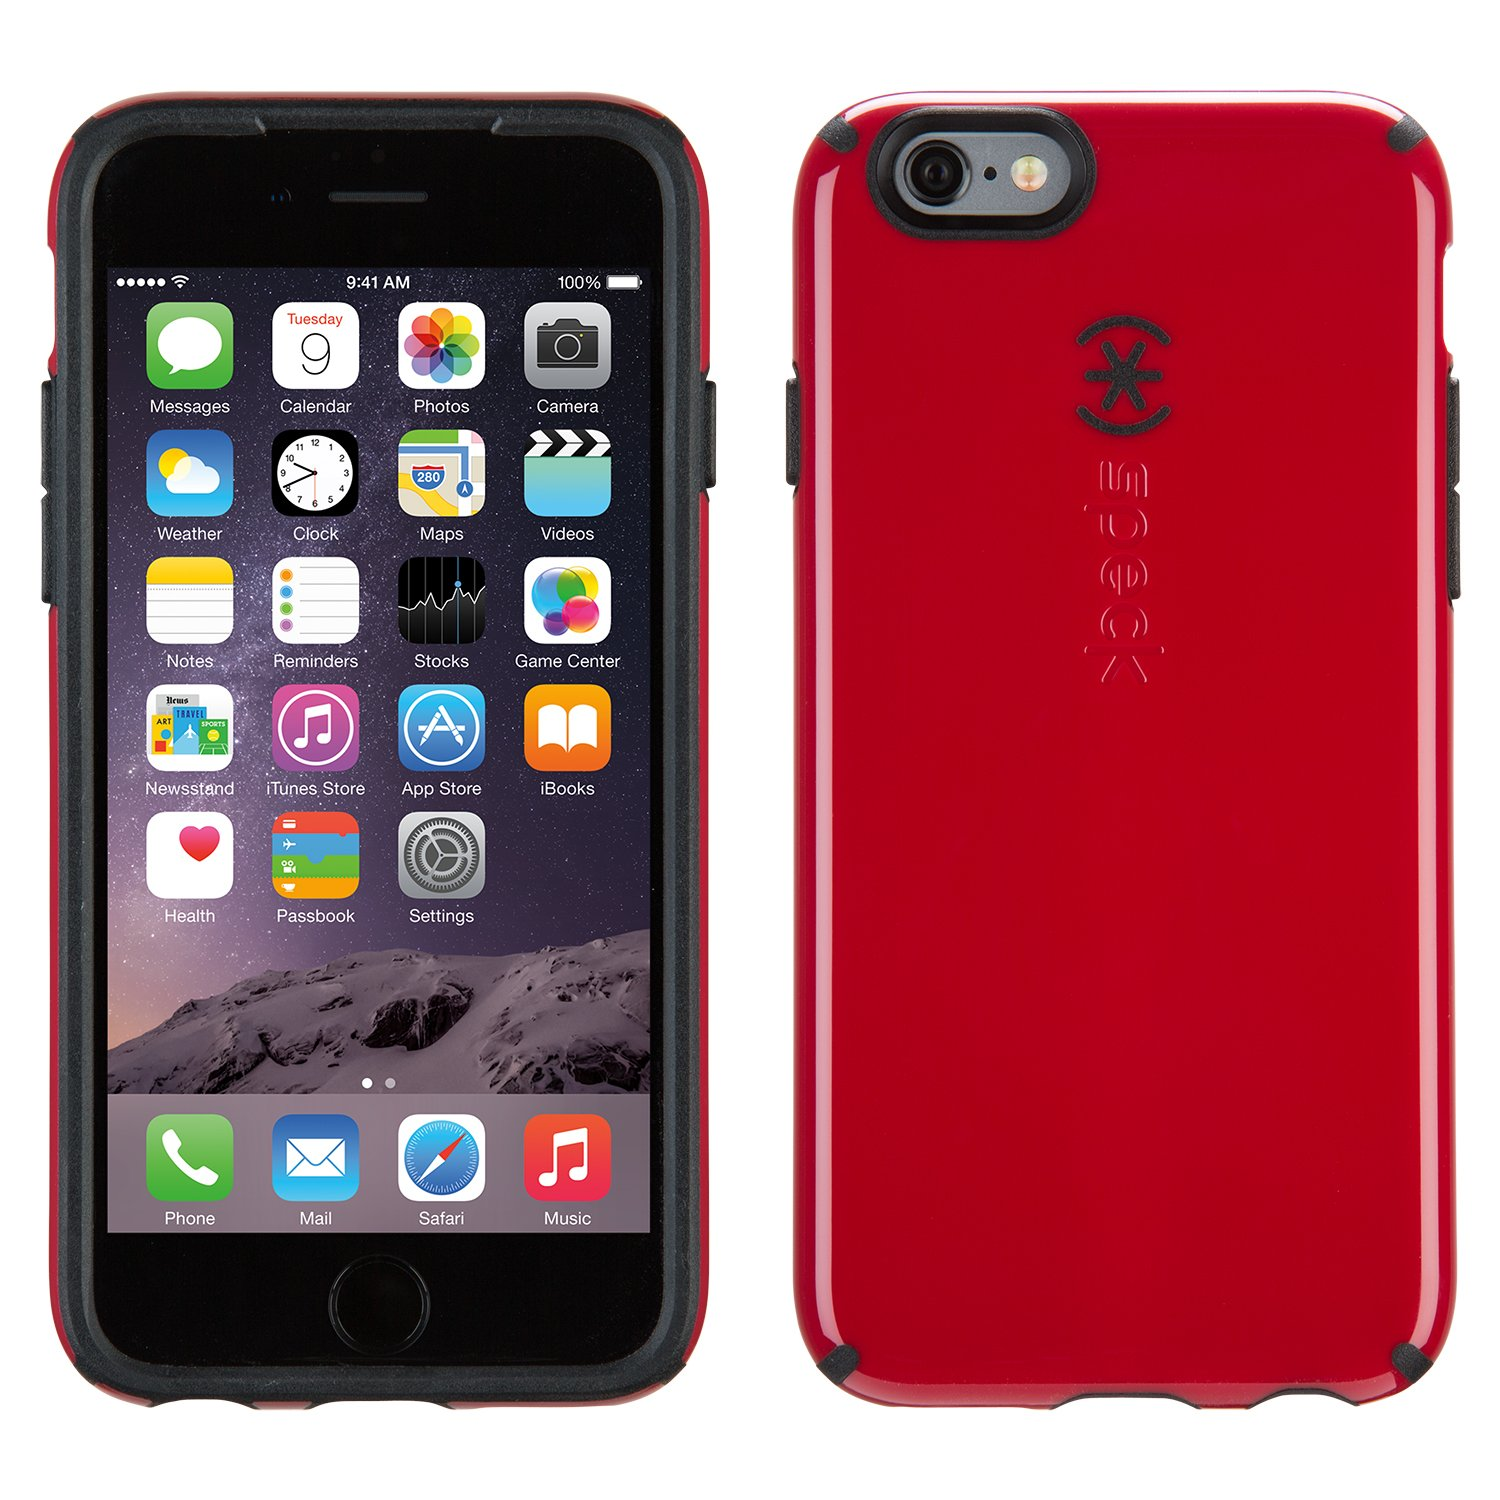 Amazon IPhone 6S Case And 6 By Speck Products CandyShell Protective Pomodoro Red Black Cell Phones Accessories